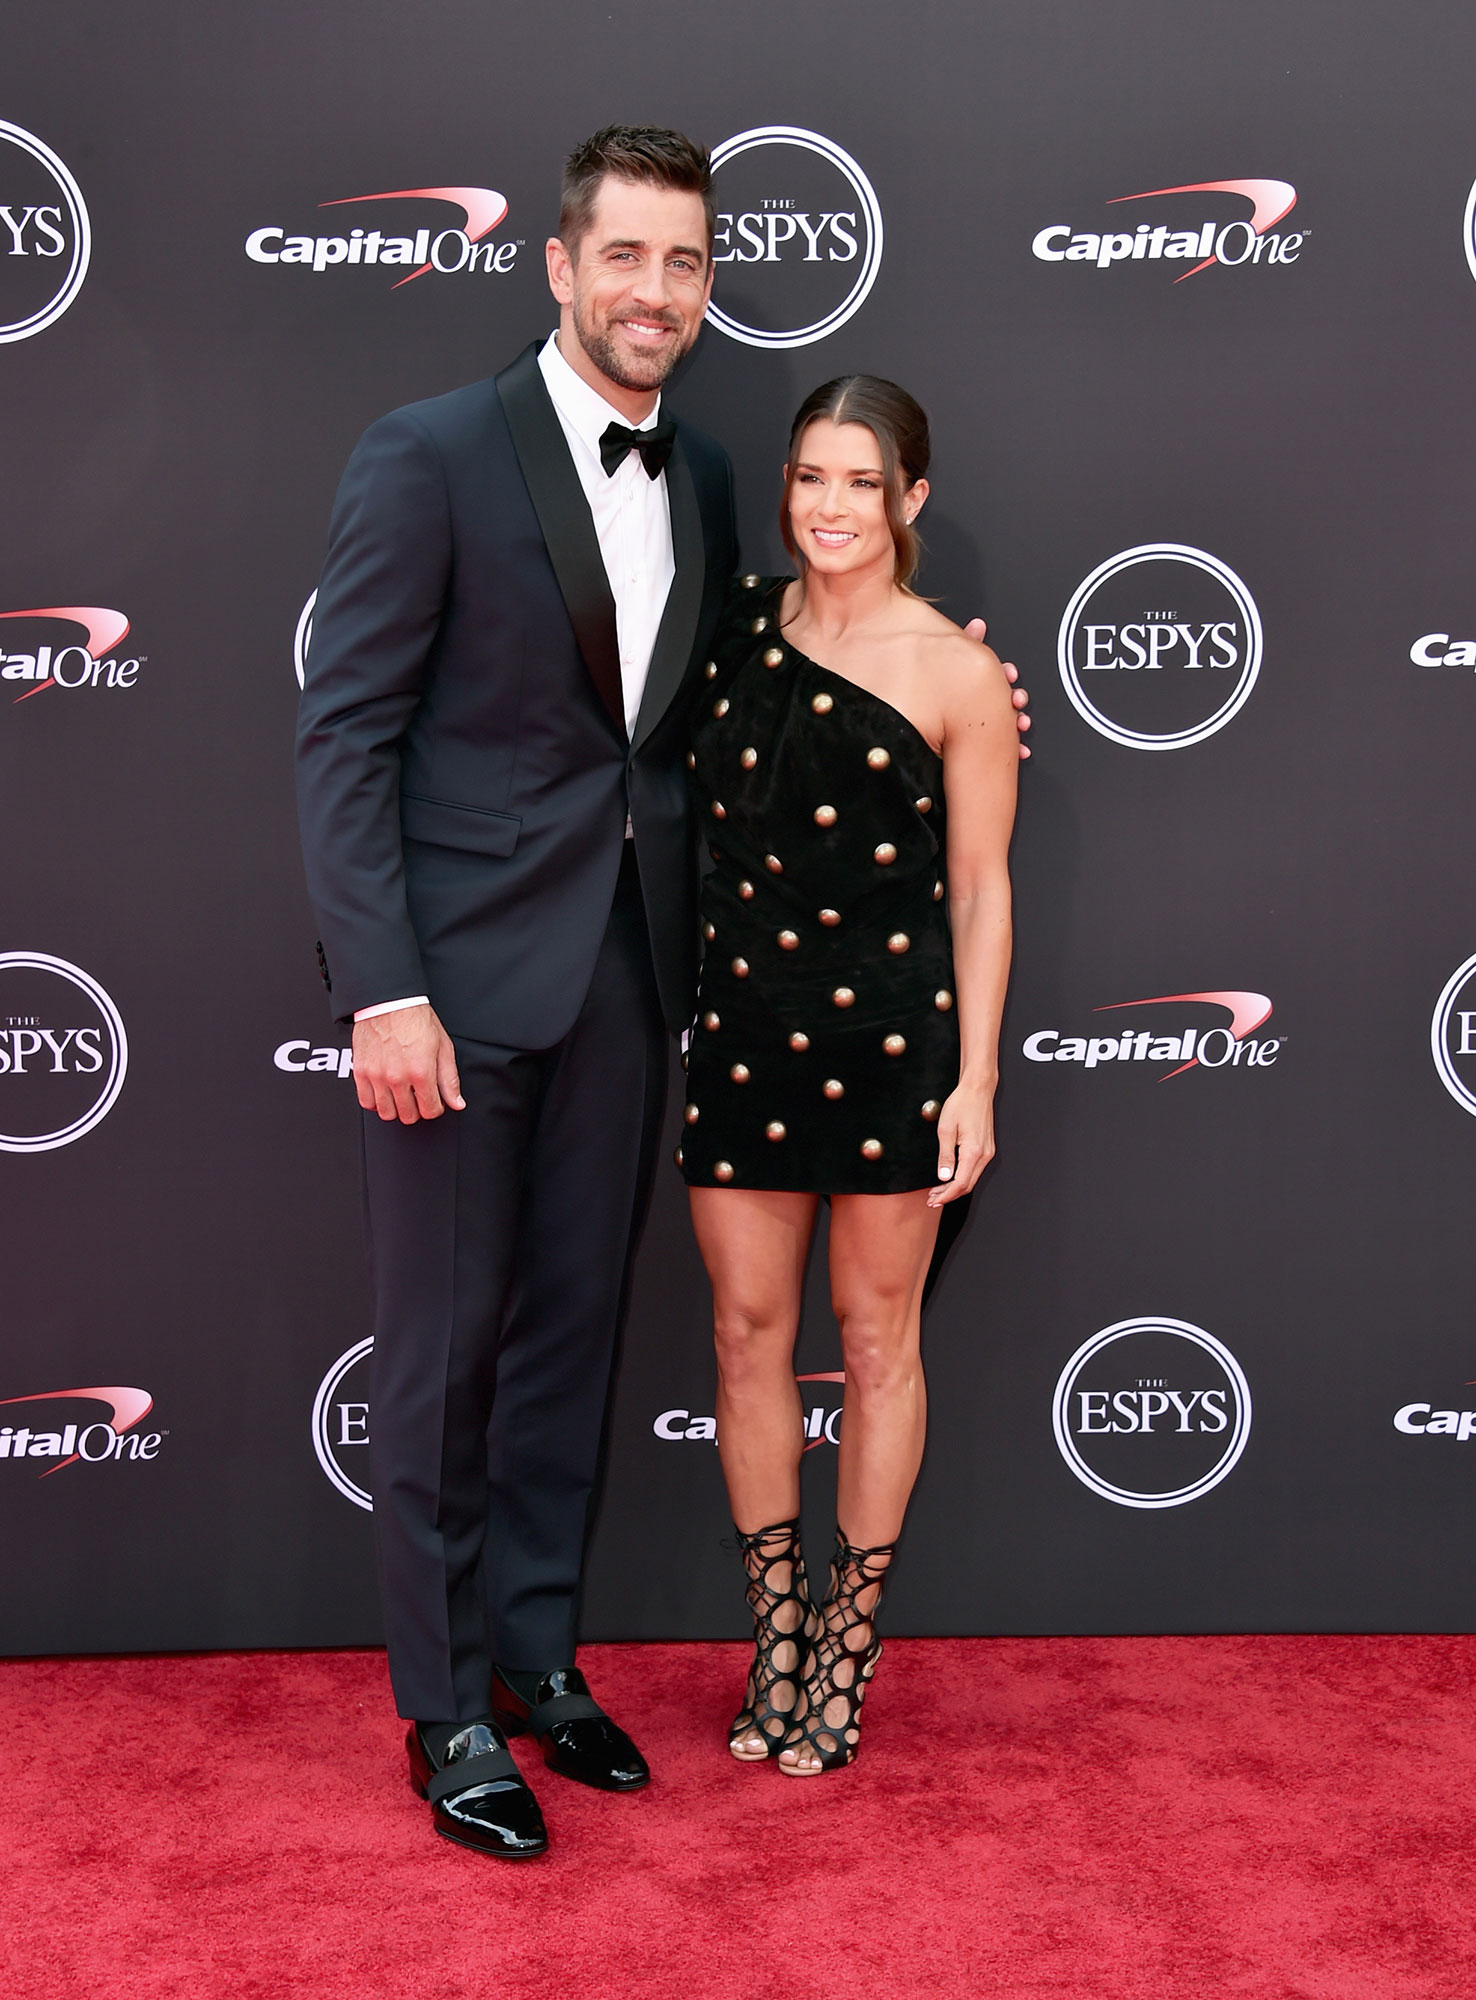 """Celebrity Couples of 2018 Aaron Rodgers and host Danica Patrick - Us confirmed in September that the NFL pro and the NASCAR driver were dating. Rodgers gushed about their relationship in October, telling Artful Living that they are """"really into each other"""" and """"really attracted to each other."""""""